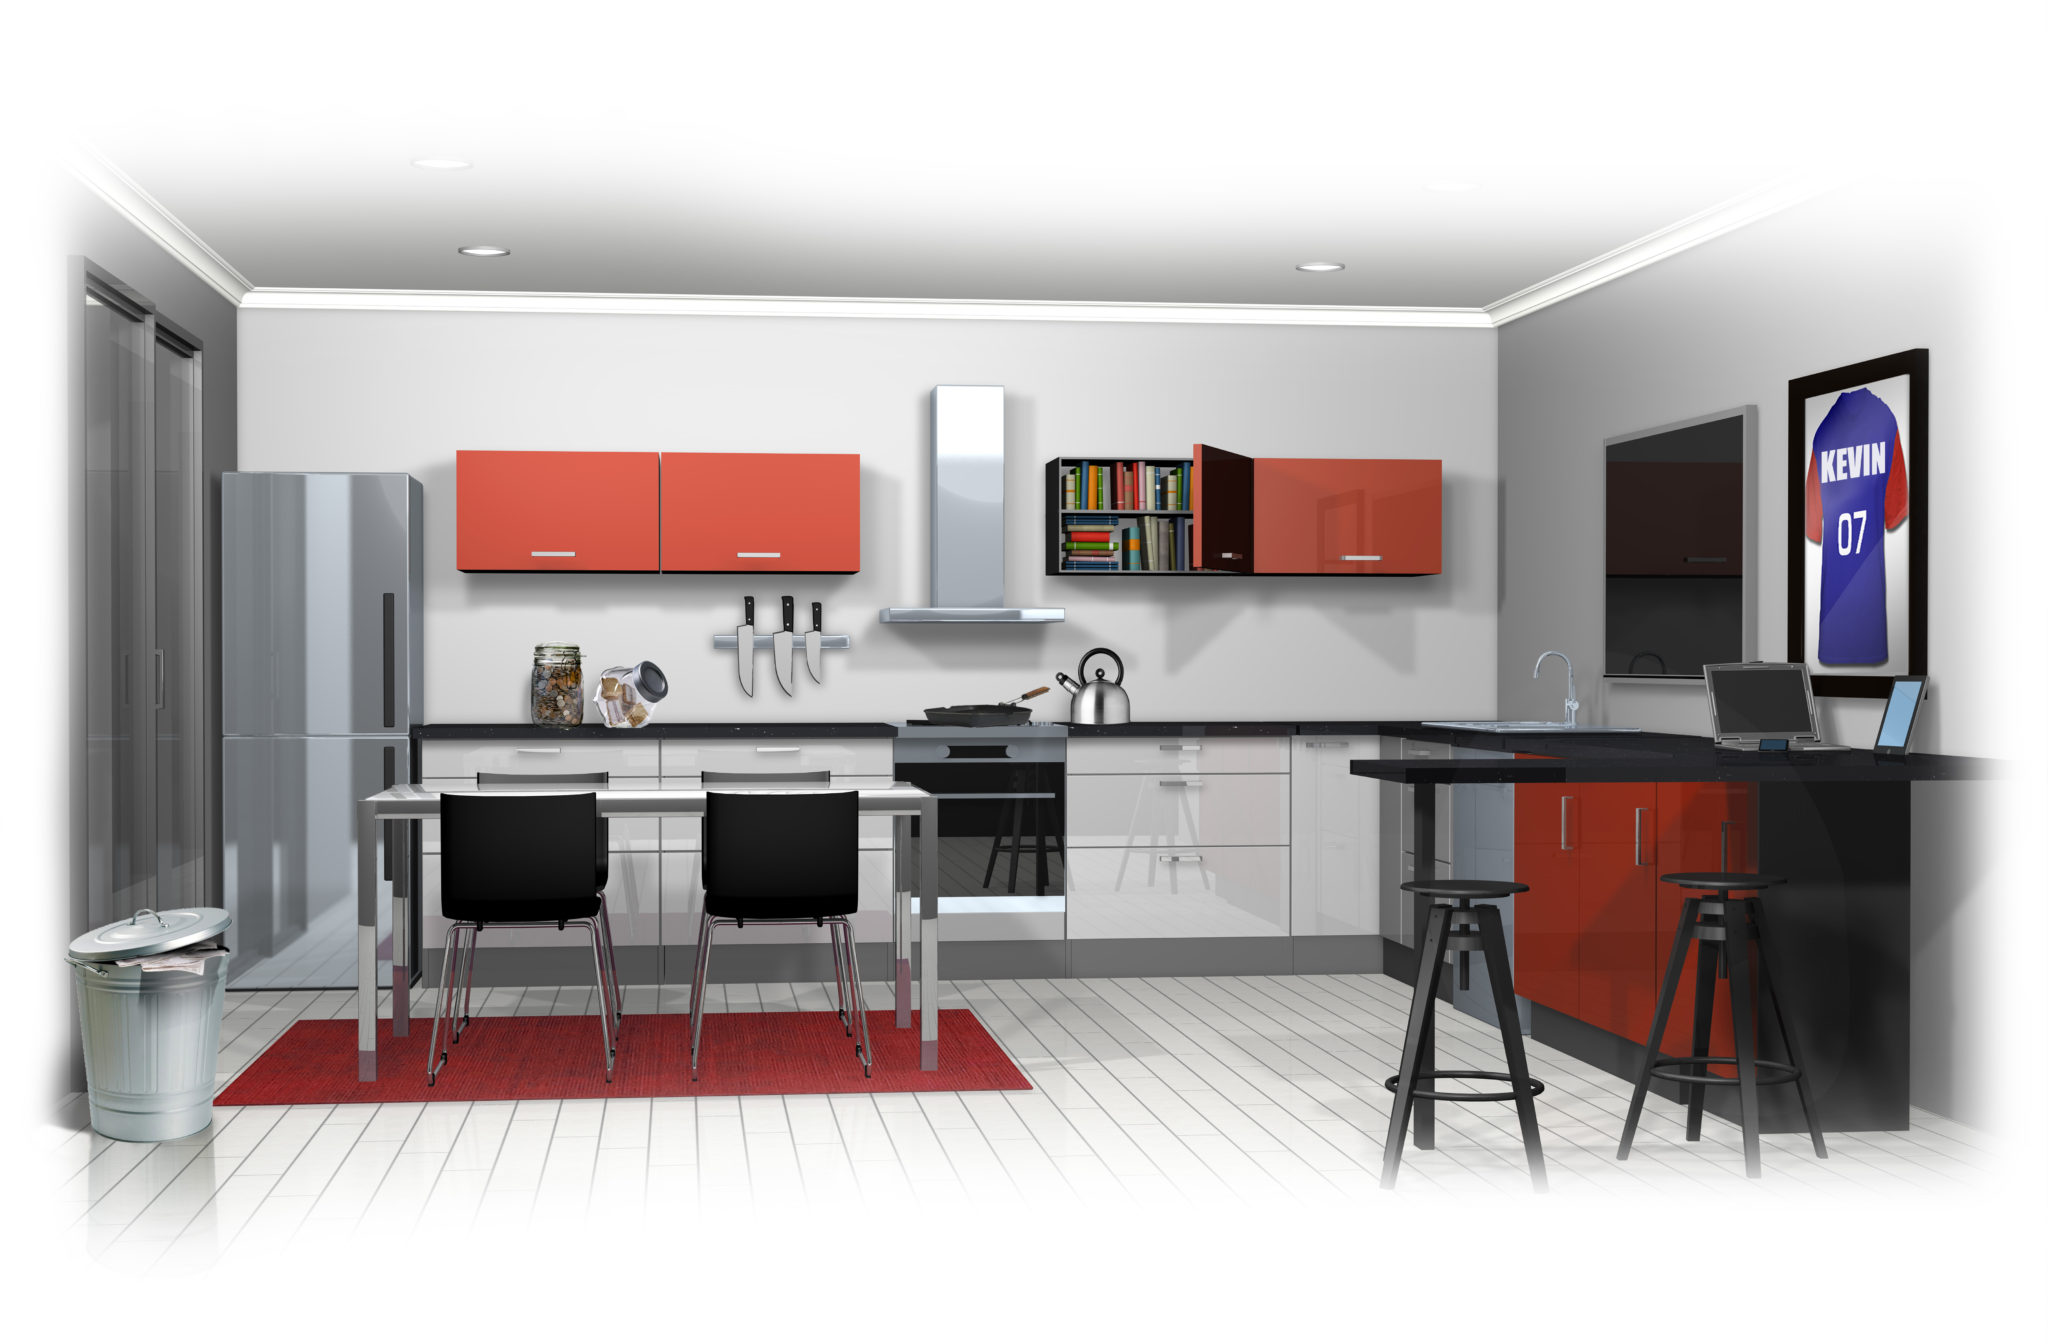 Discontinued Ikea Products Ikea Design New Kitchens For The Lodge For Abbott And Rudd